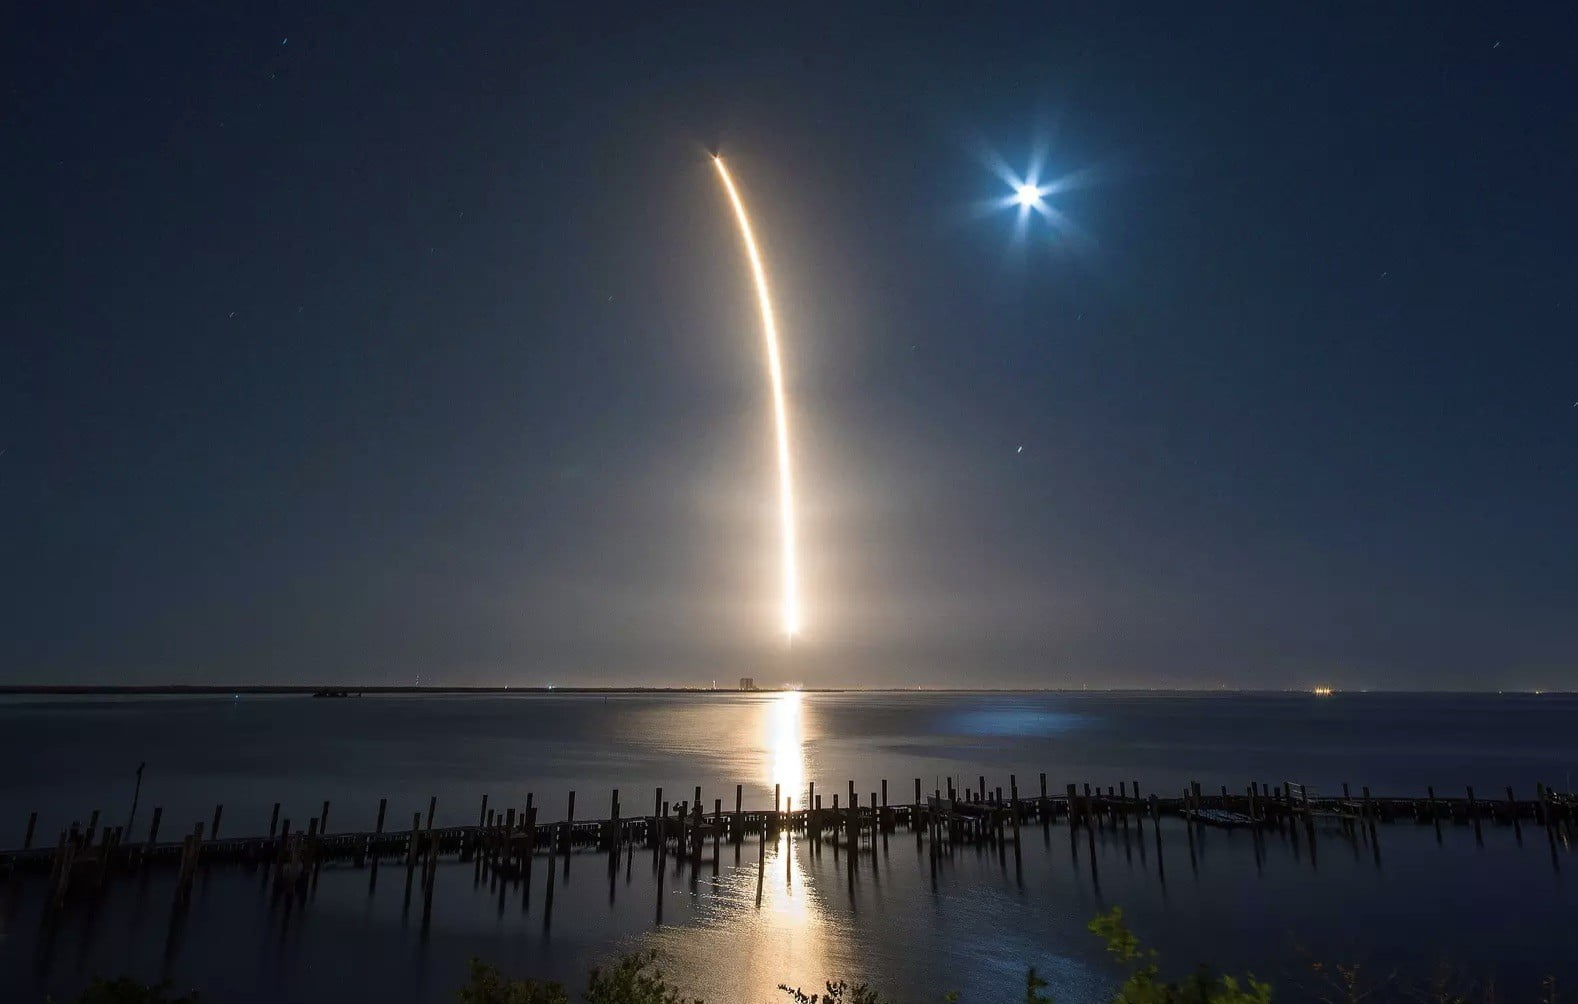 SpaceX Has Launched and Landed Another Block 5 Rocket | Digital Trends